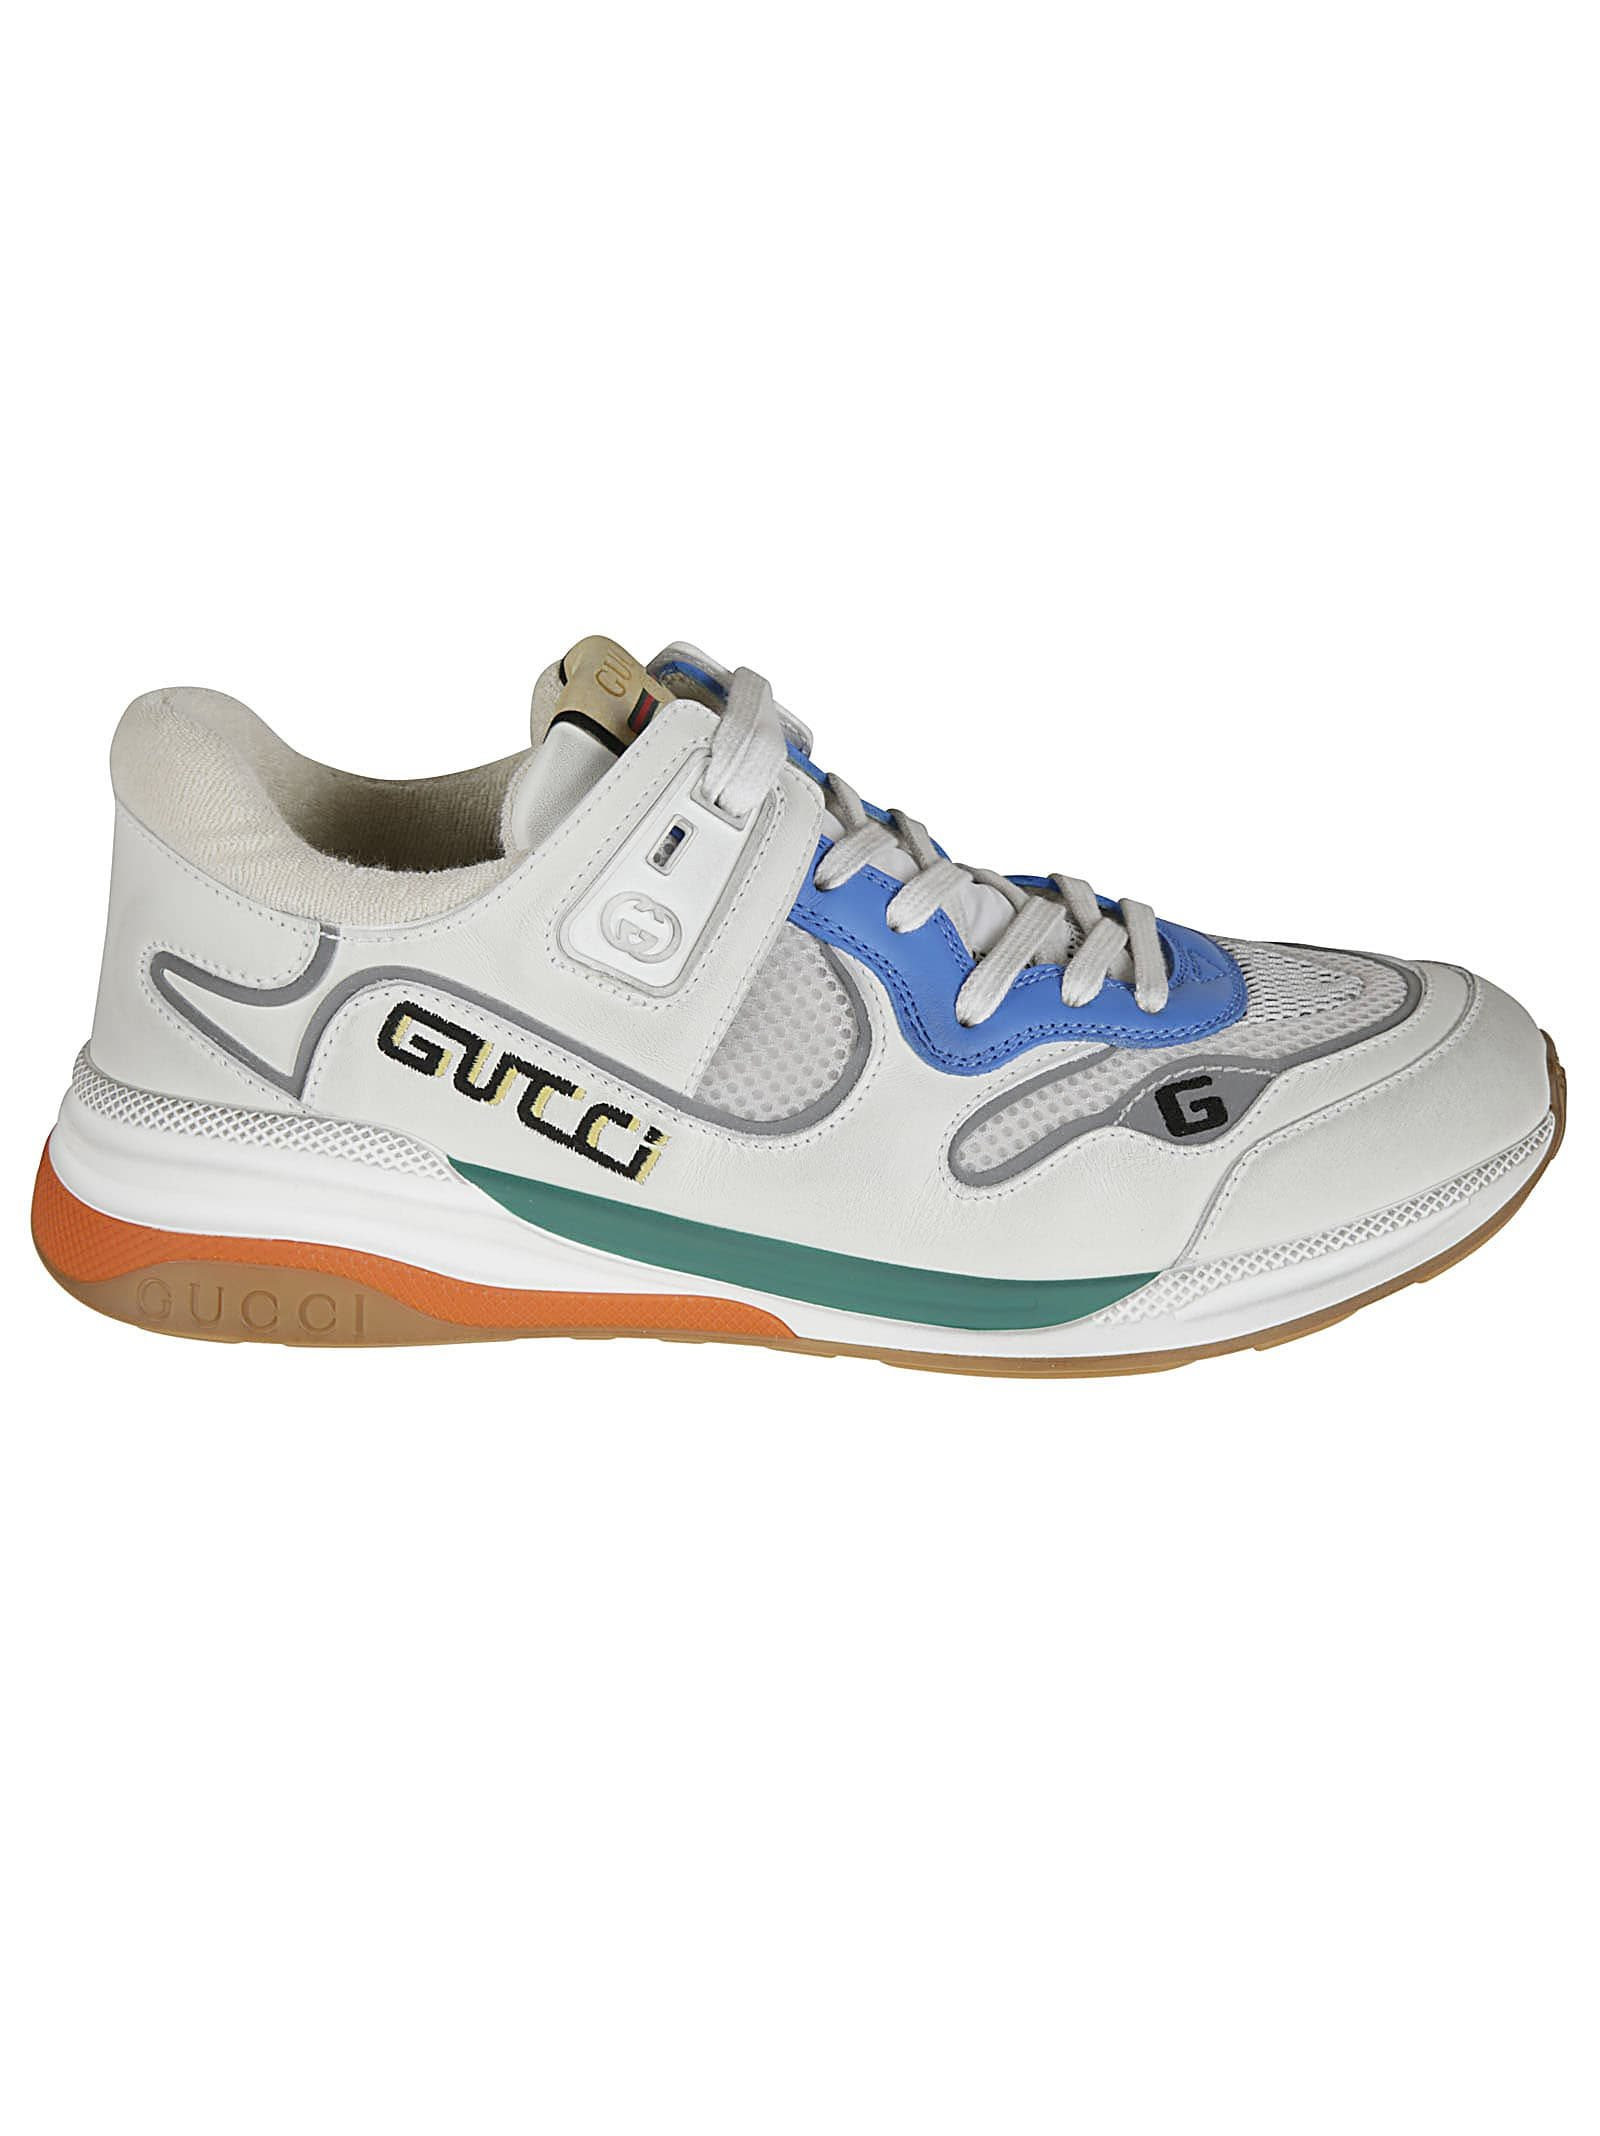 Image of Gucci